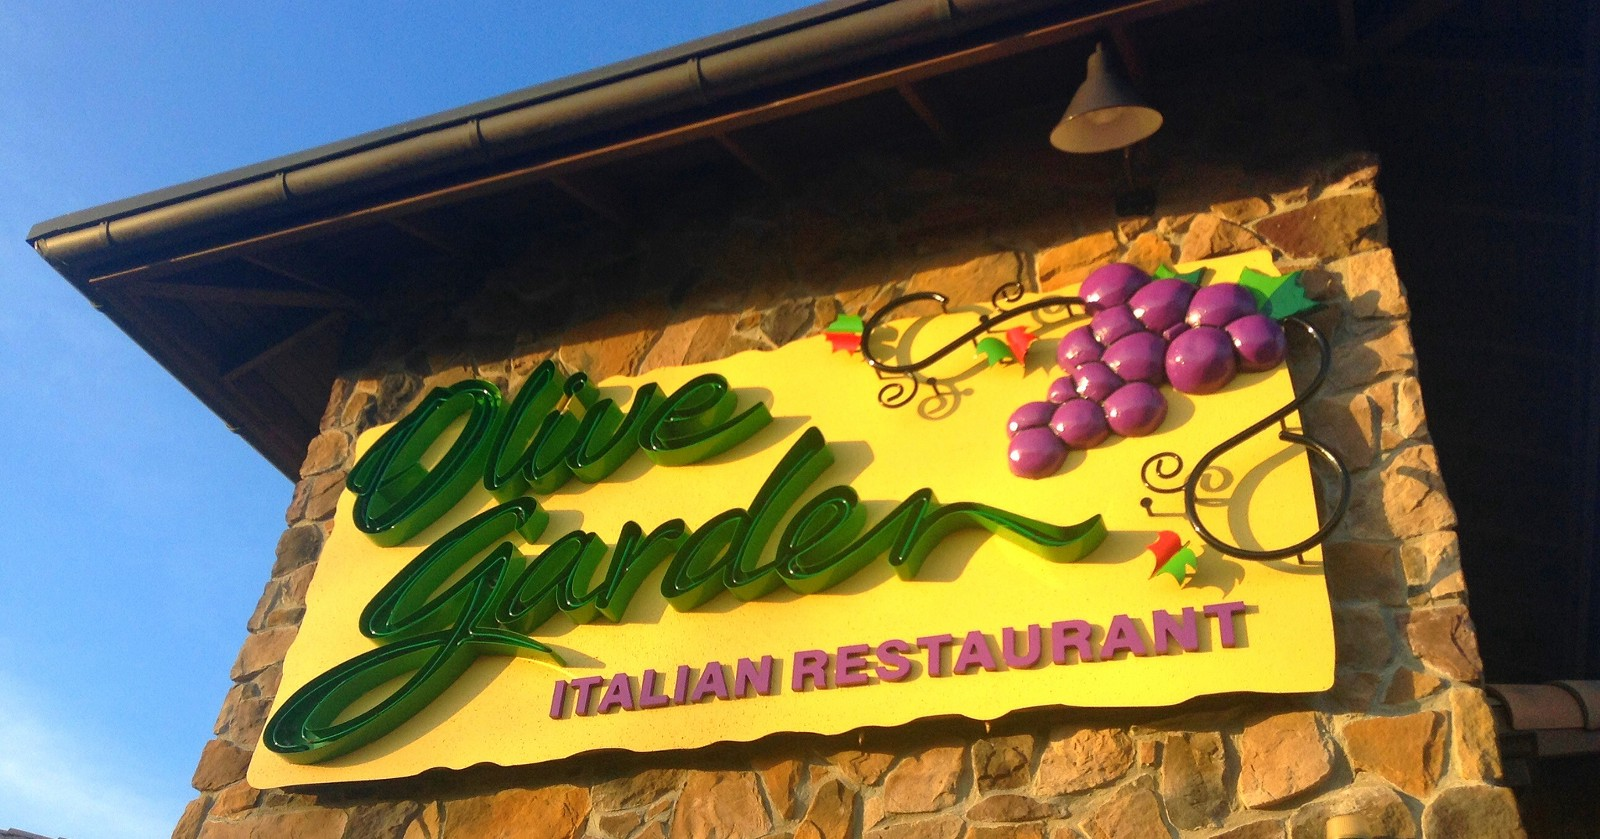 Enterprise UX and The Olive Garden – Crooked boxes, shaky arrows ...